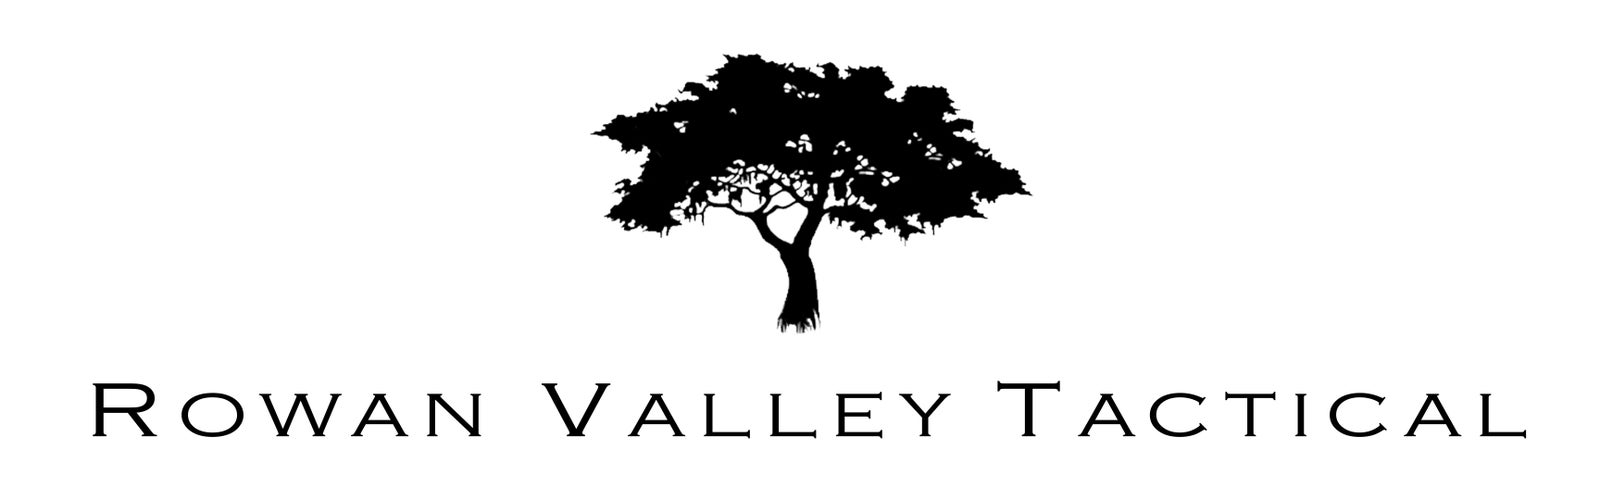 Rowan Valley Tactical